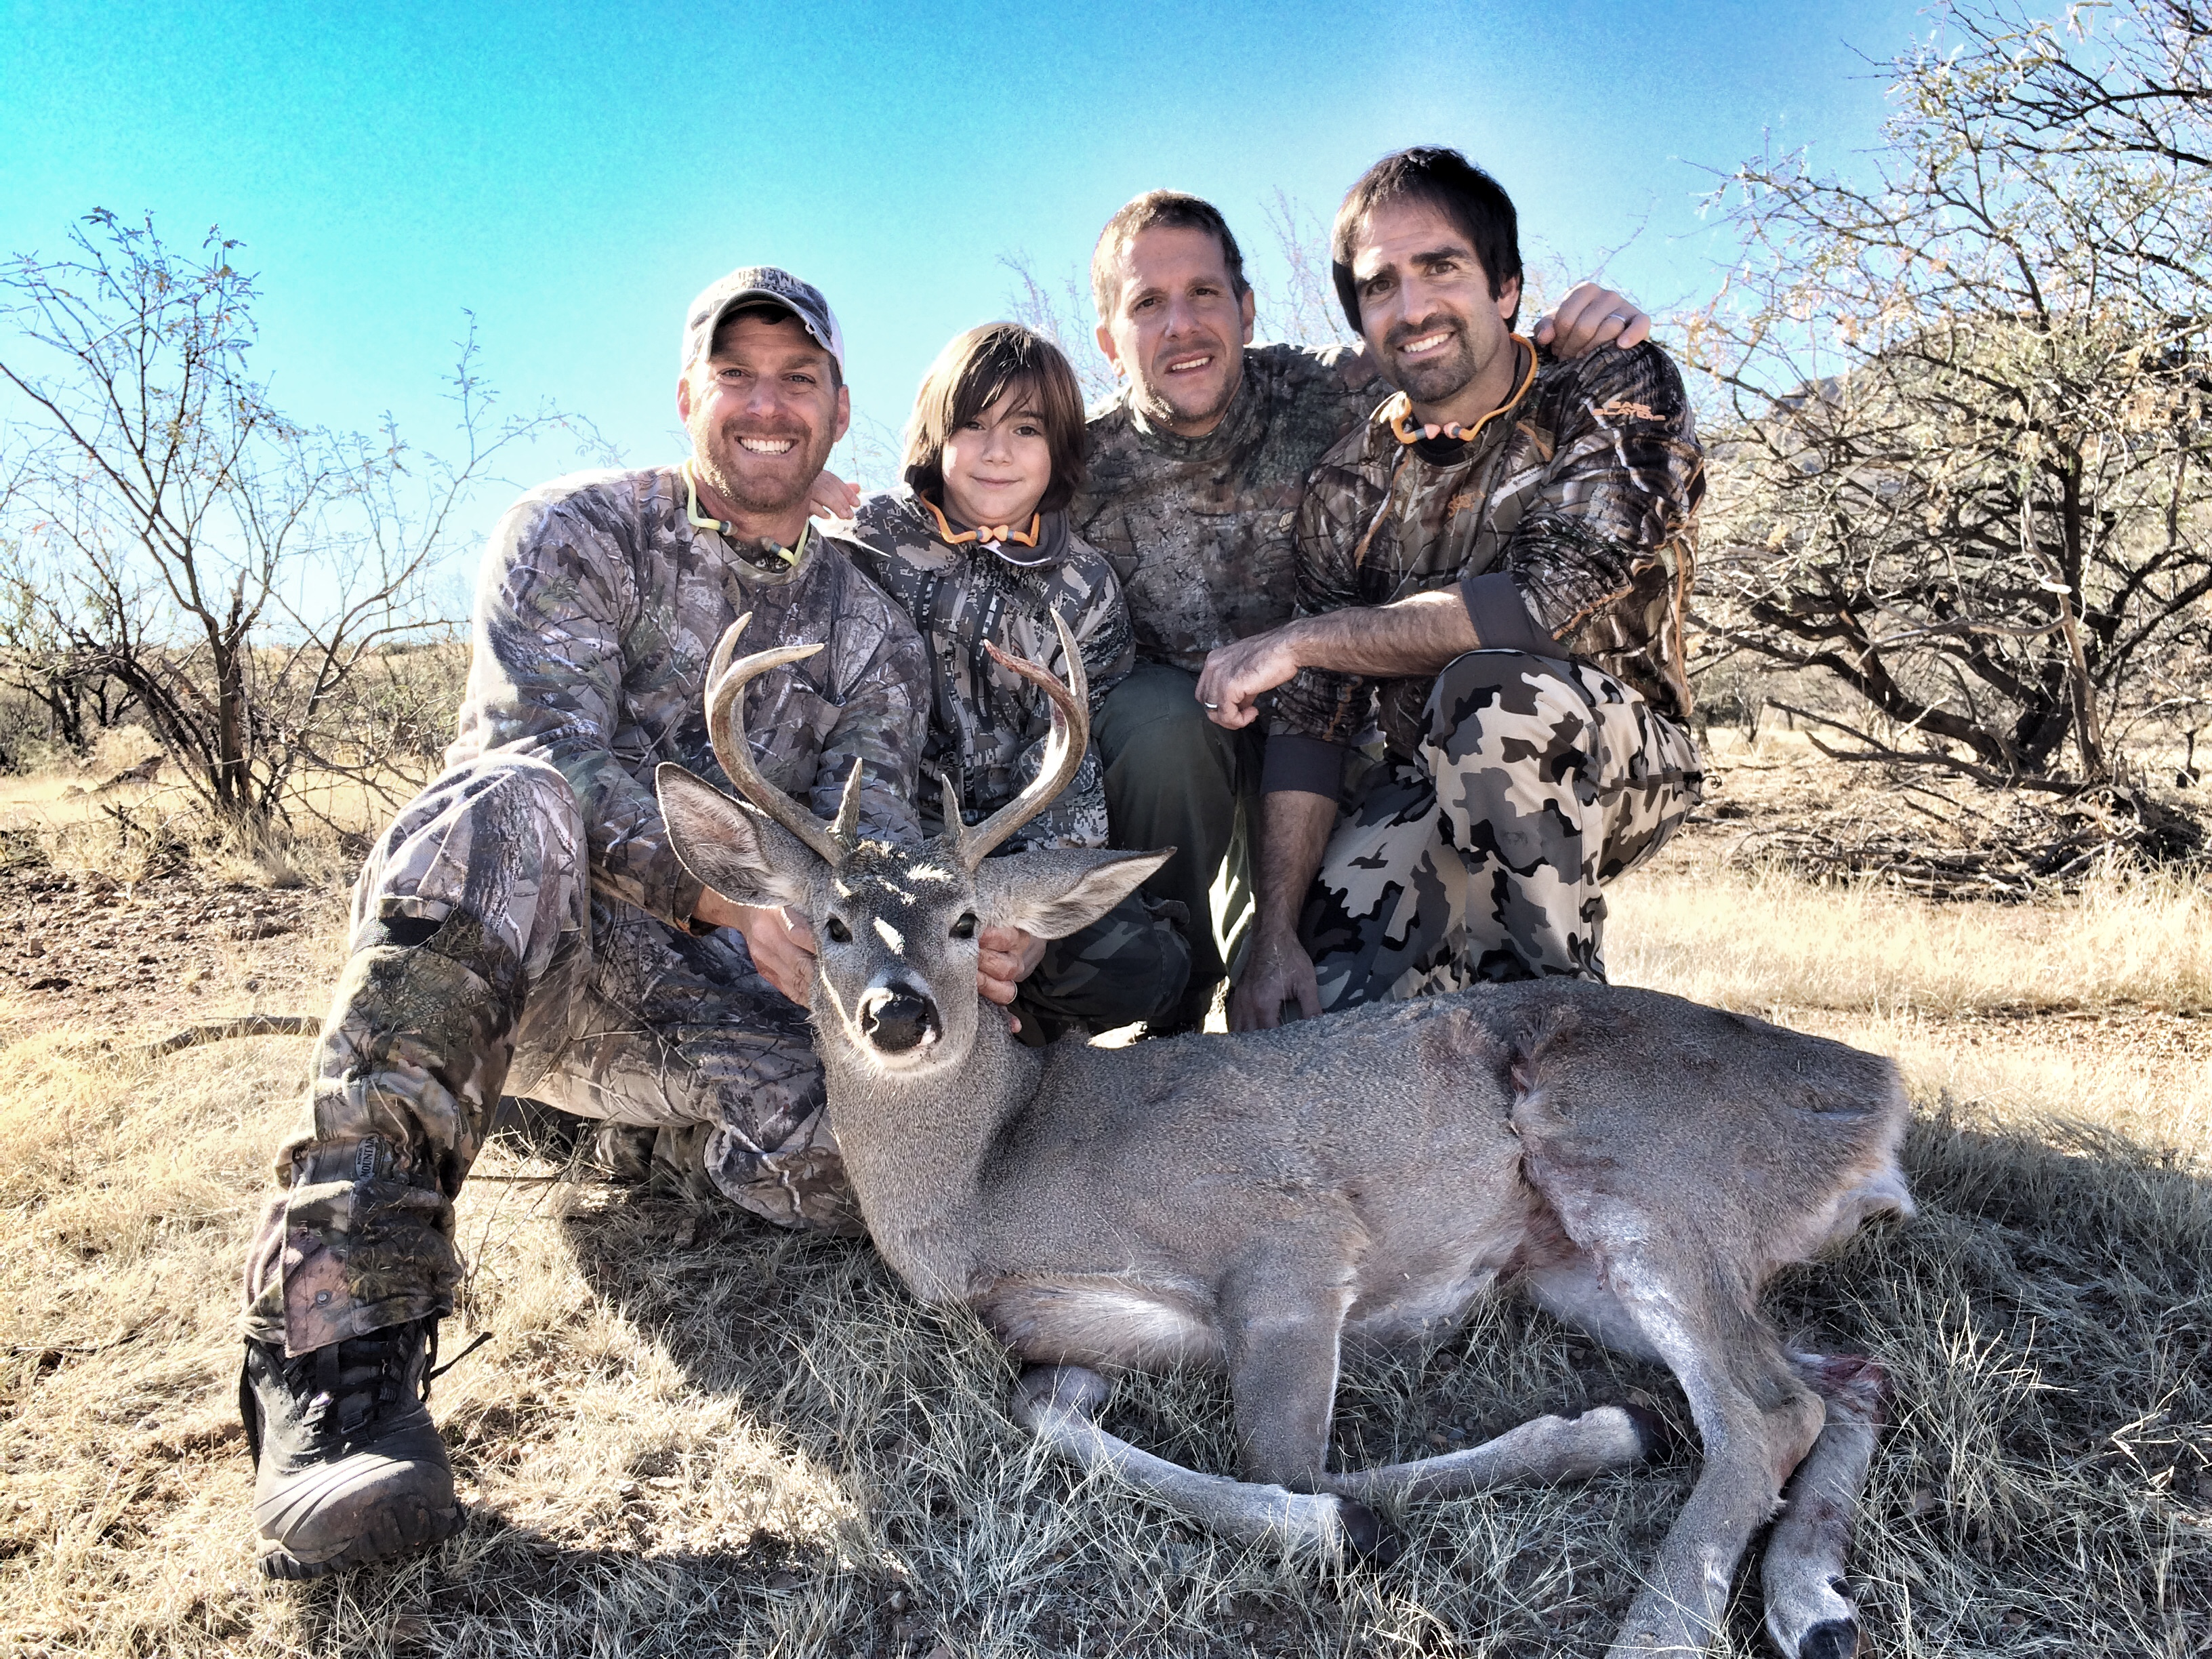 My cousins and nephew with coues buck